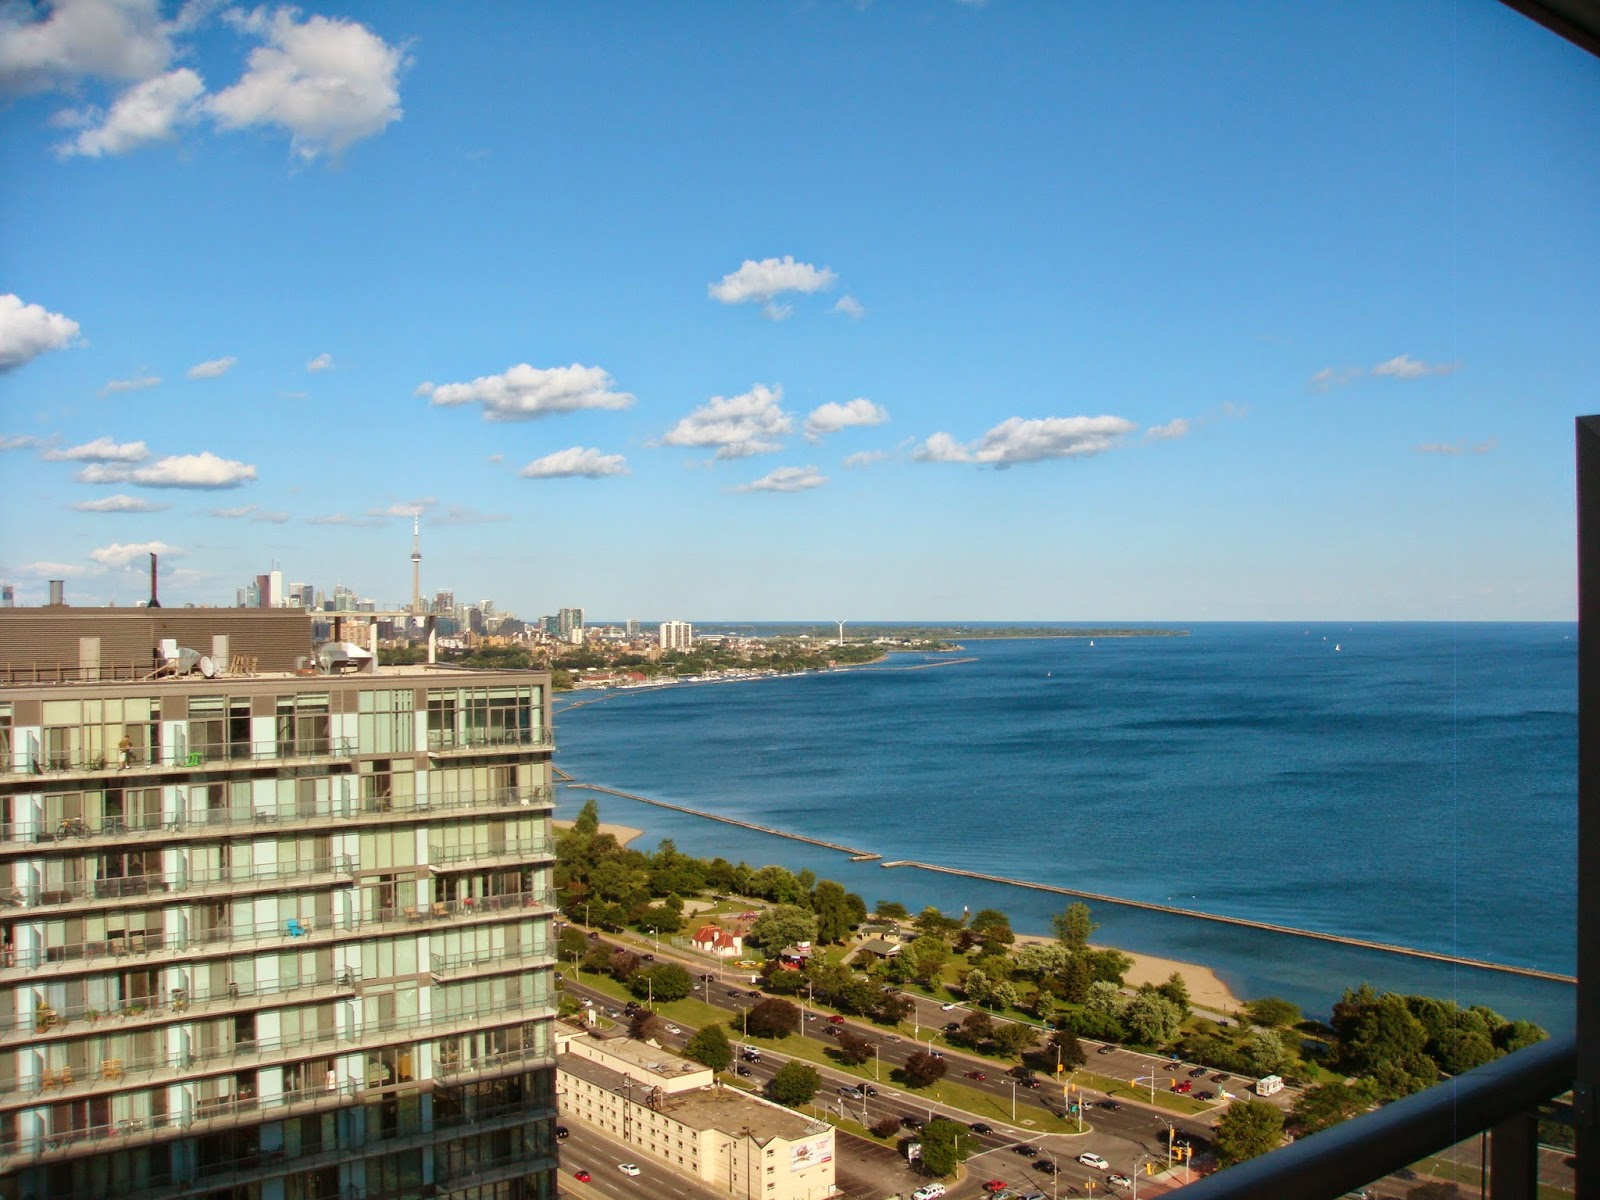 Toronto Harbourfront Condos For Sale,Rent.